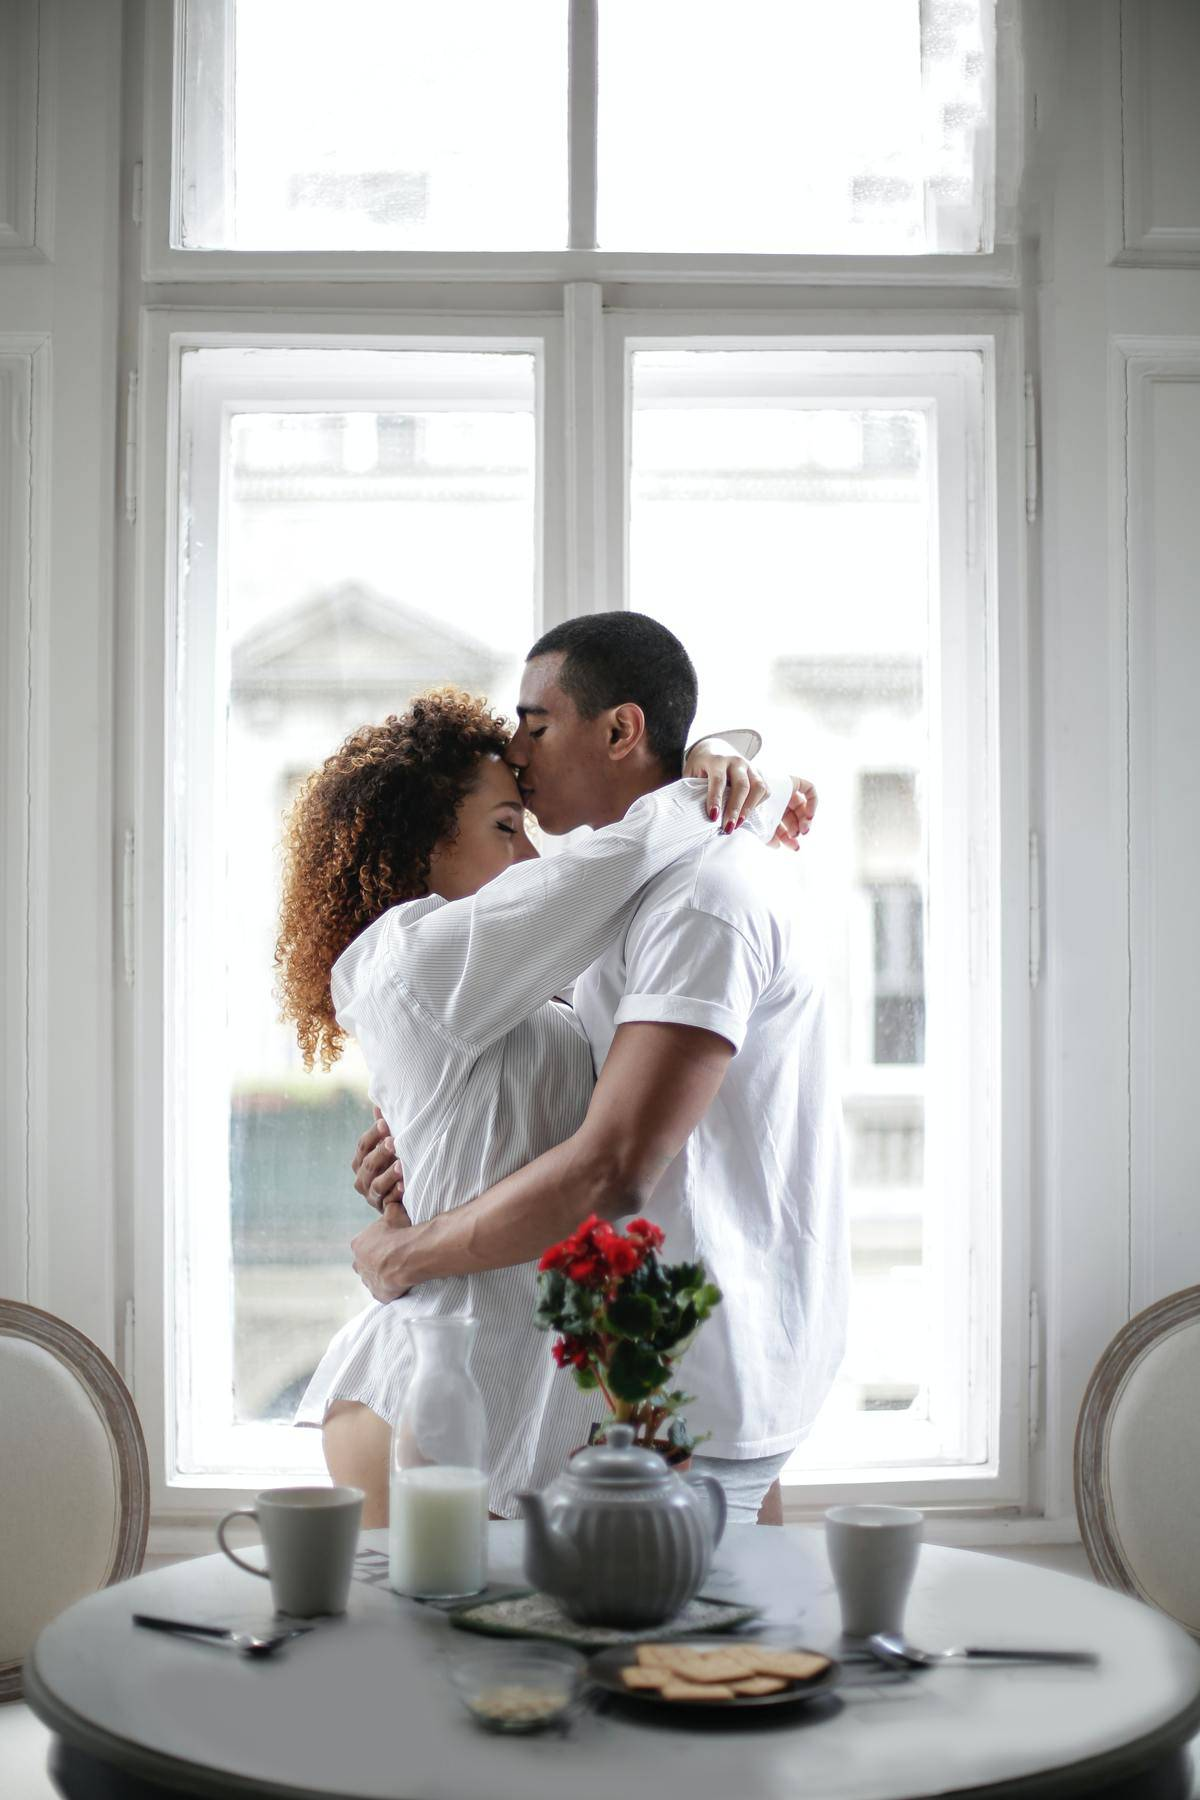 man kisses woman on the forehead by the window